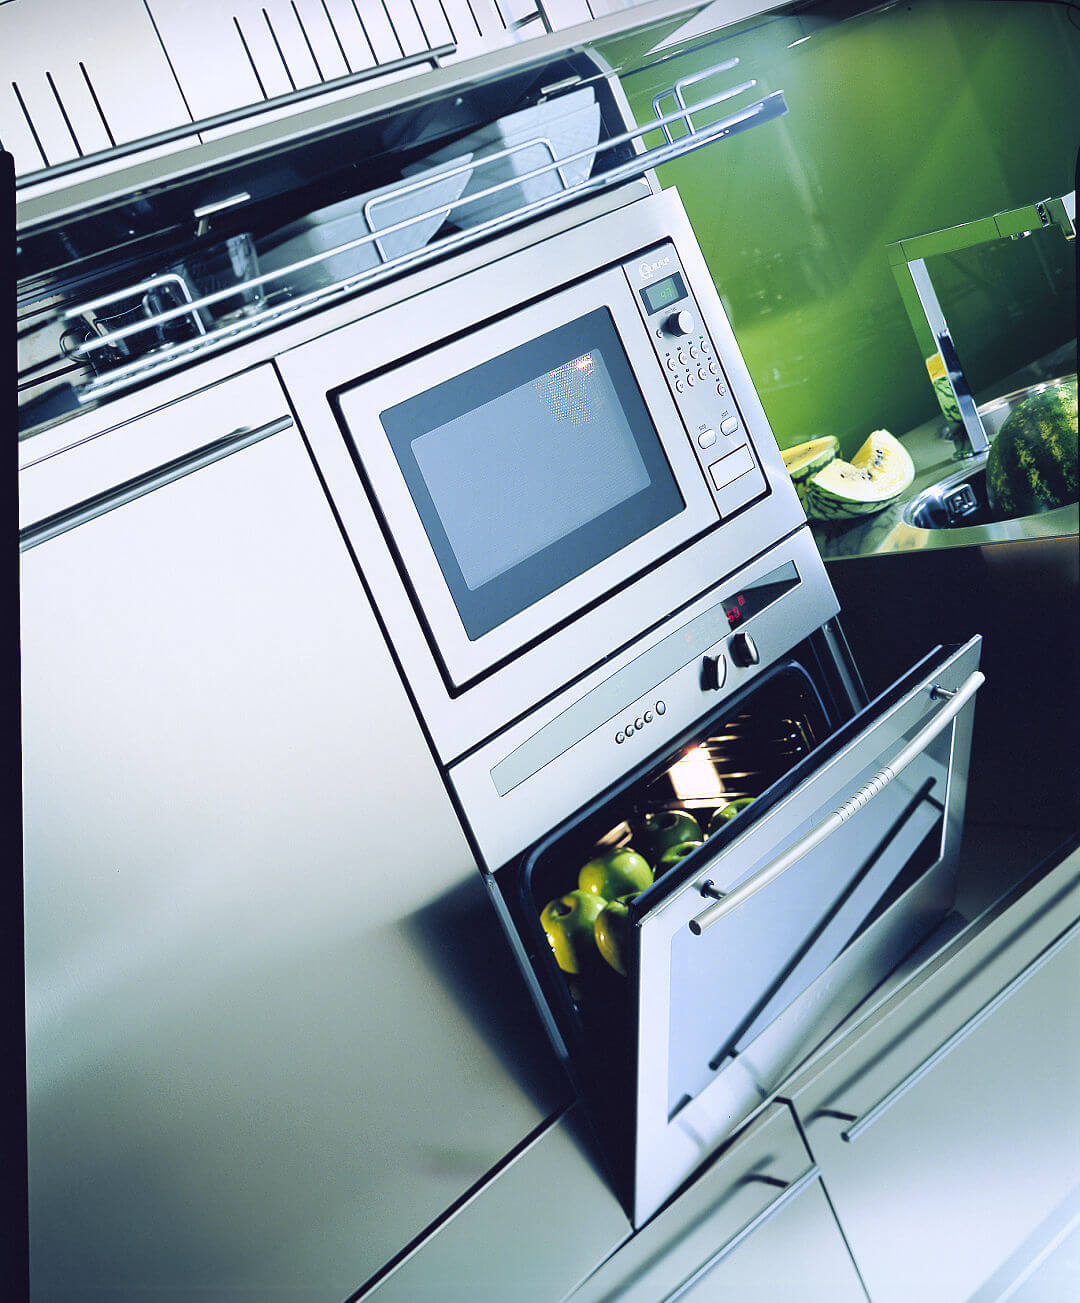 Arca Cucine Italy - Kitchen Stainless Steel Customized - Ovens and Washing